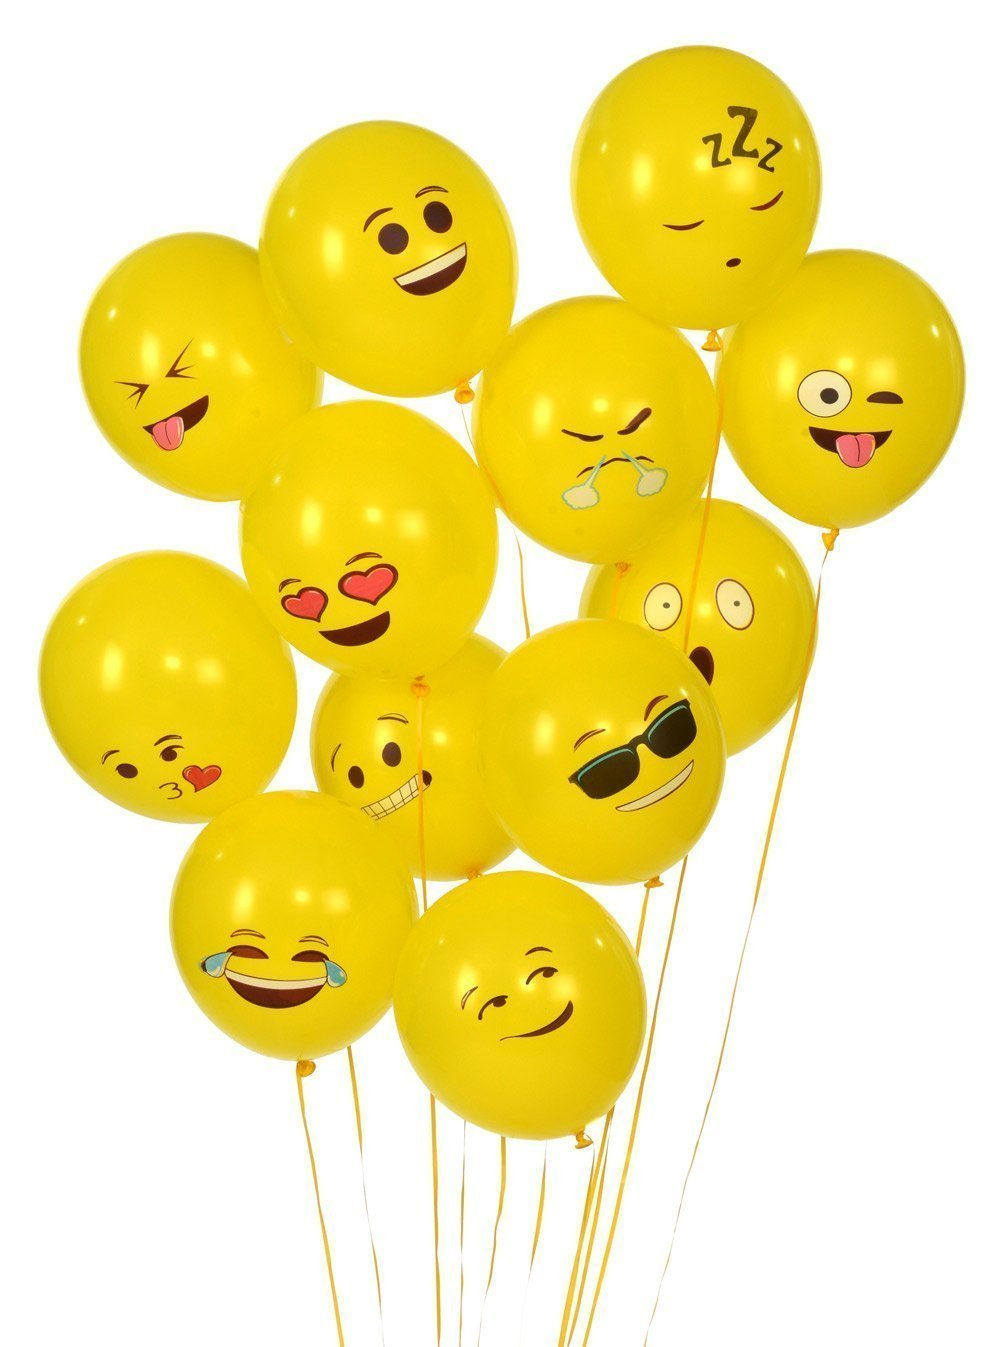 Etcbuys Emoji Mylar Party Balloons Emoji Balloons Emoji Party Supplies